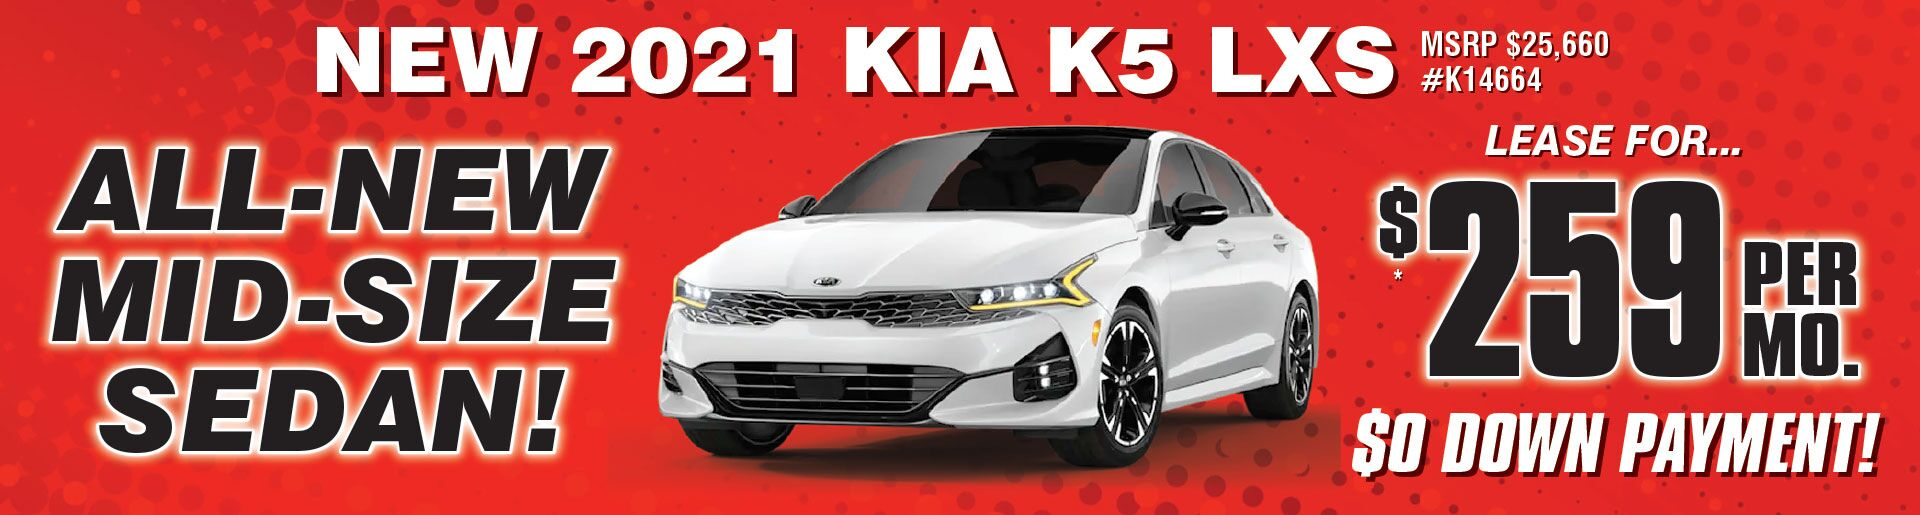 2021 KIA K5 Sept Lease